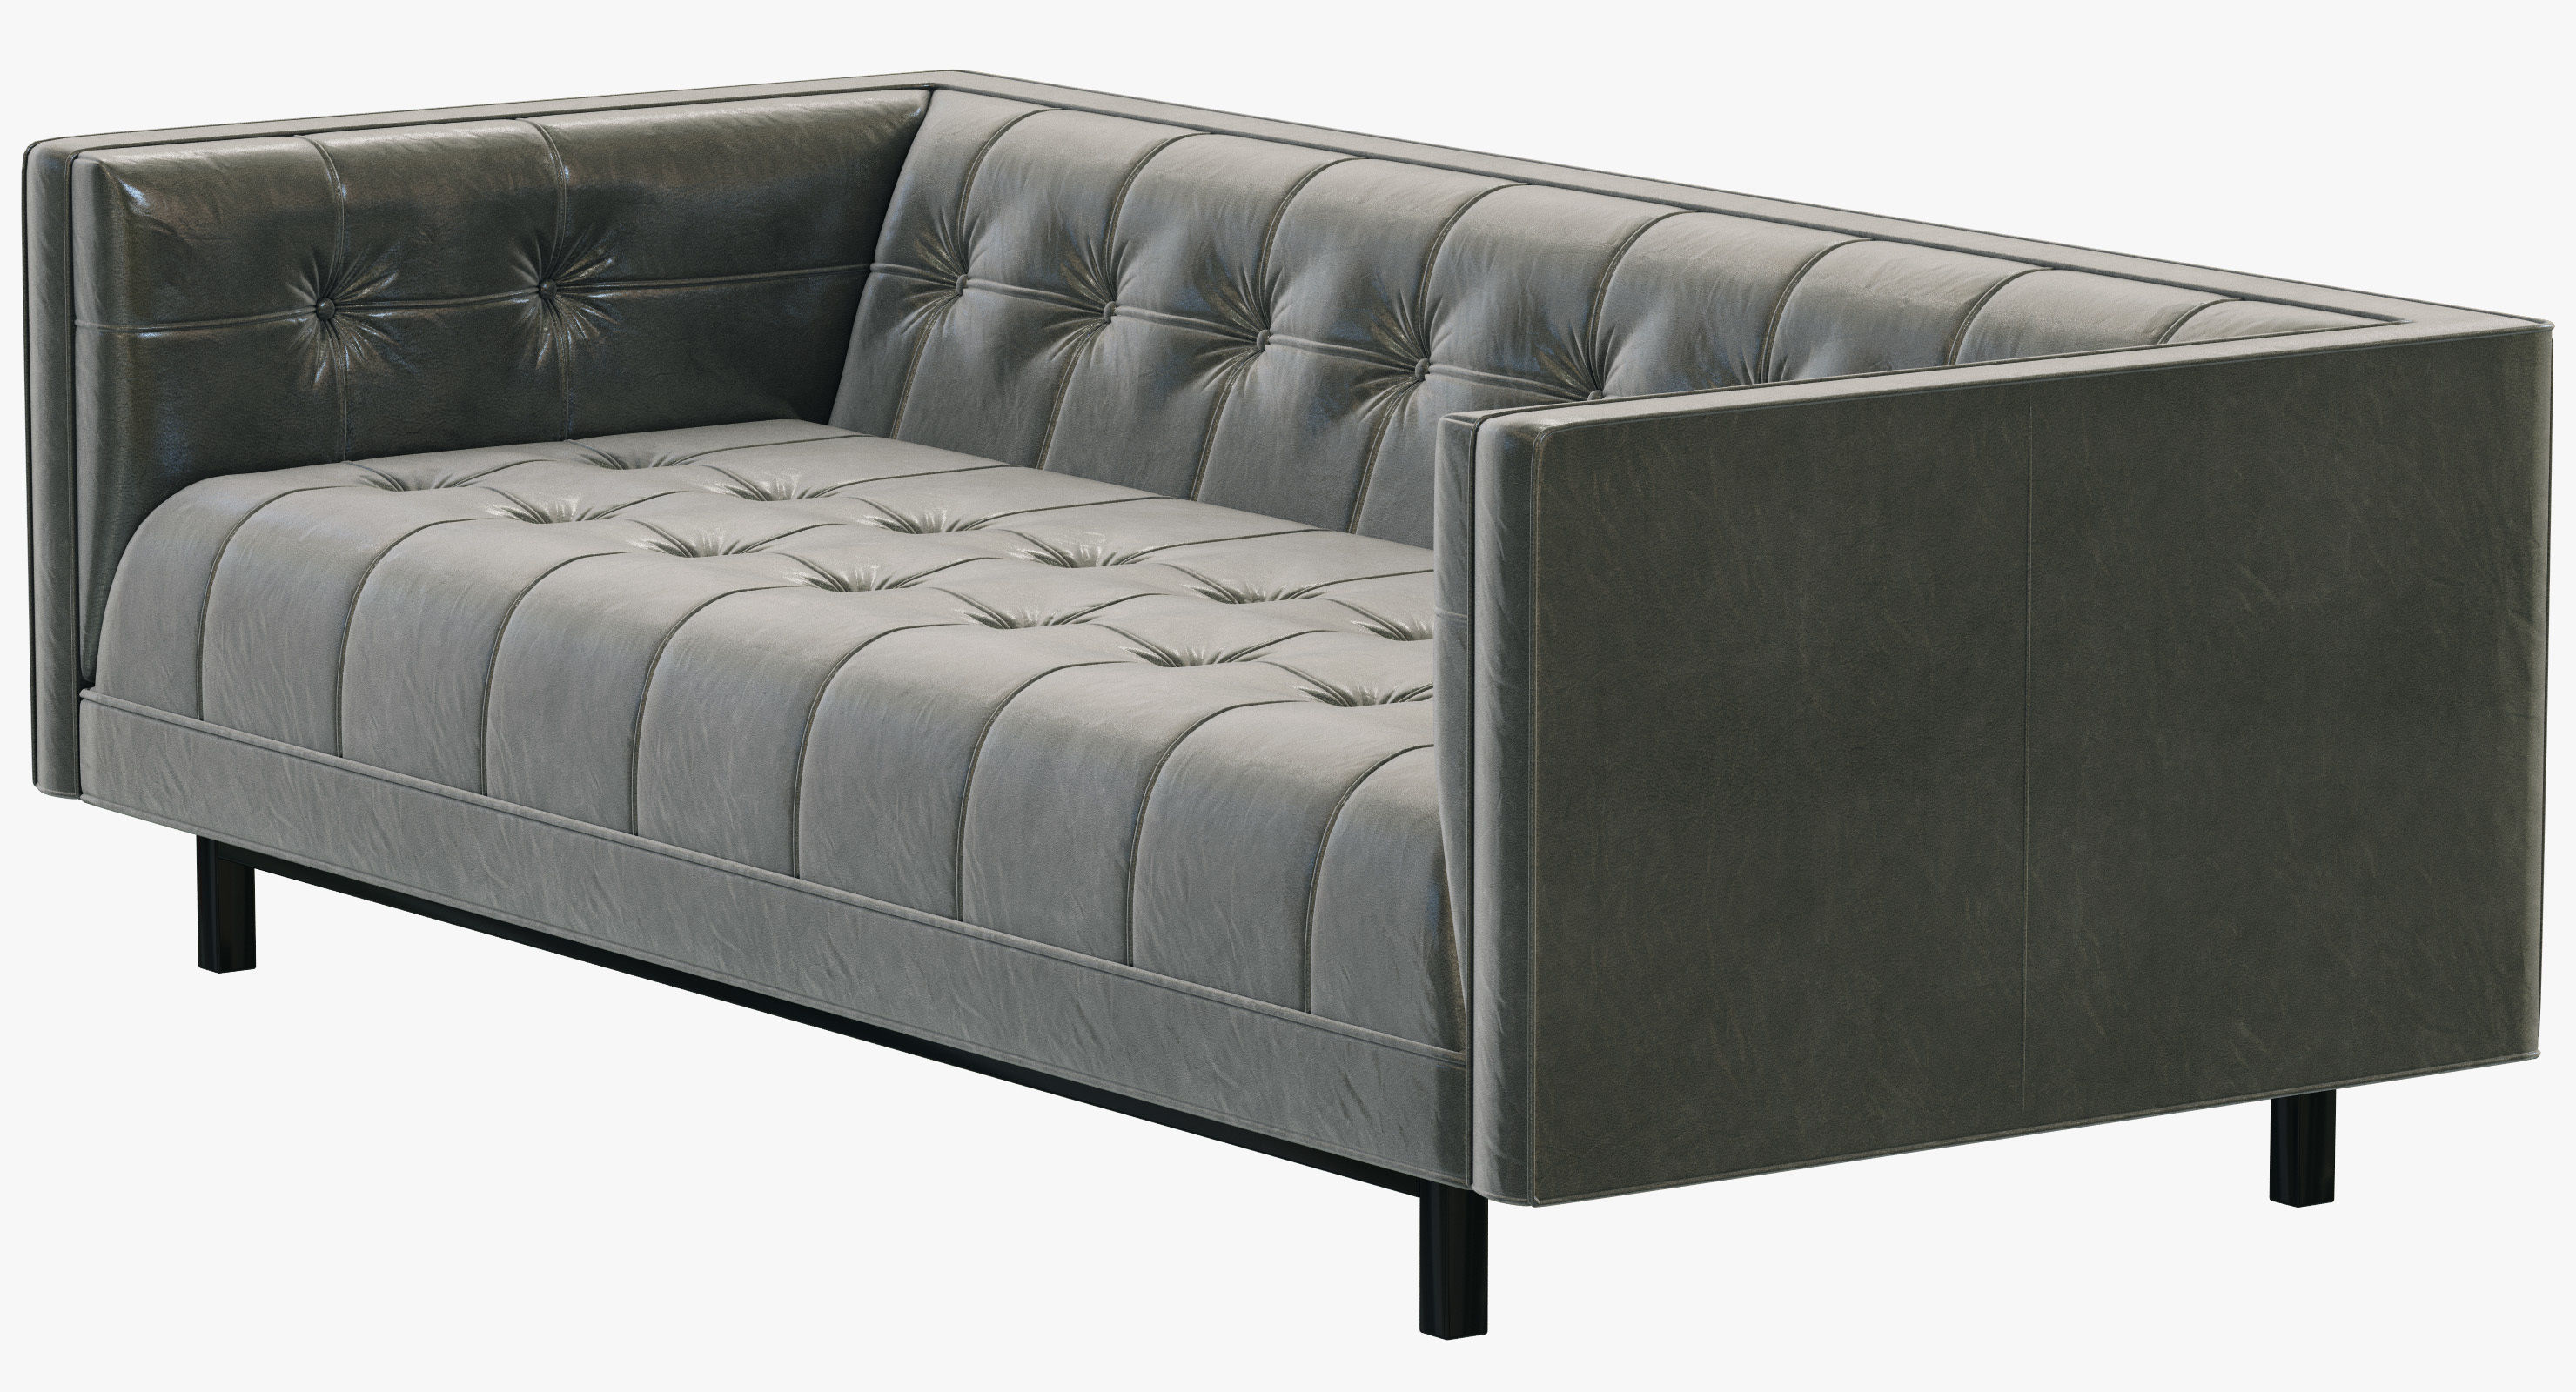 cloud track arm leather sofa rv for slide out restoration hardware